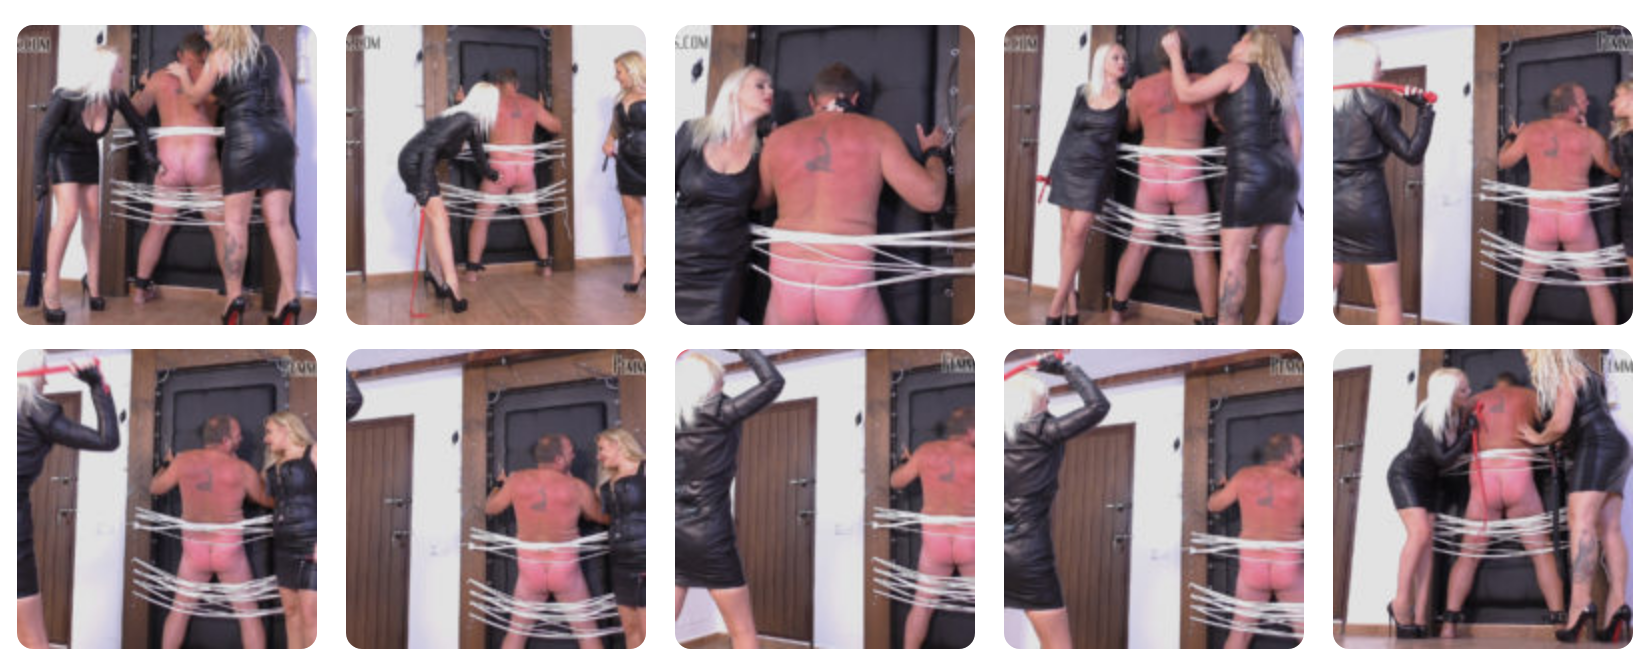 Featuring Divine Mistress Heather, Mistress Fox. A new slave has been strapped to the whip wall and given a thorough test with a variety of implements, including heavy leather floggers and then a vicious single tail, expertly wielded by Mistress Heather. Mistress Fox gives him blow after blow with a punishing cat o'nine tail whip, whilst Mistress Heather encourages him to suffer for them, whilst he stares deep into their sadistic eyes!